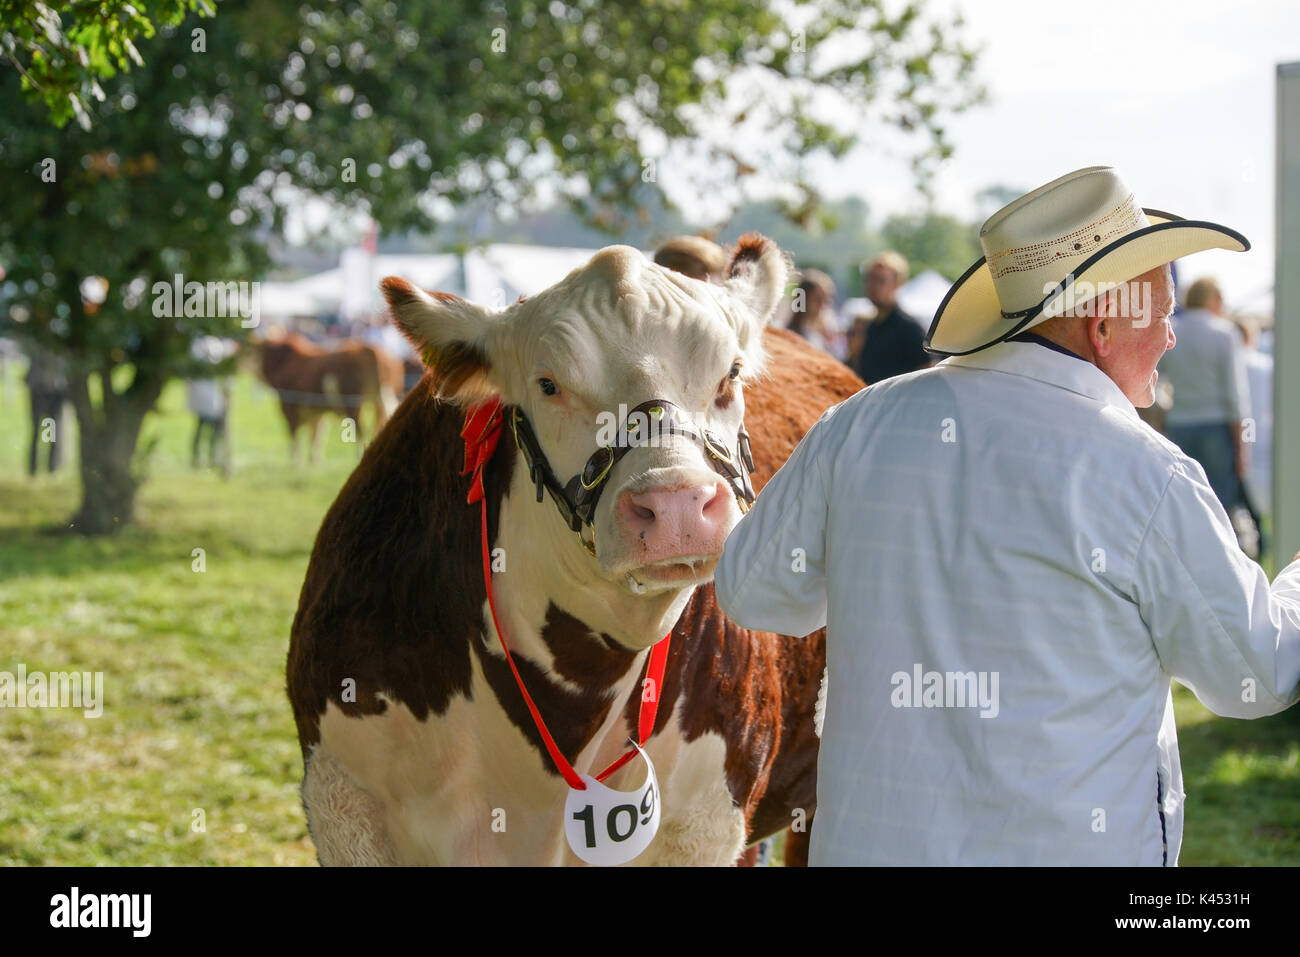 Les bucks country show Photo Stock